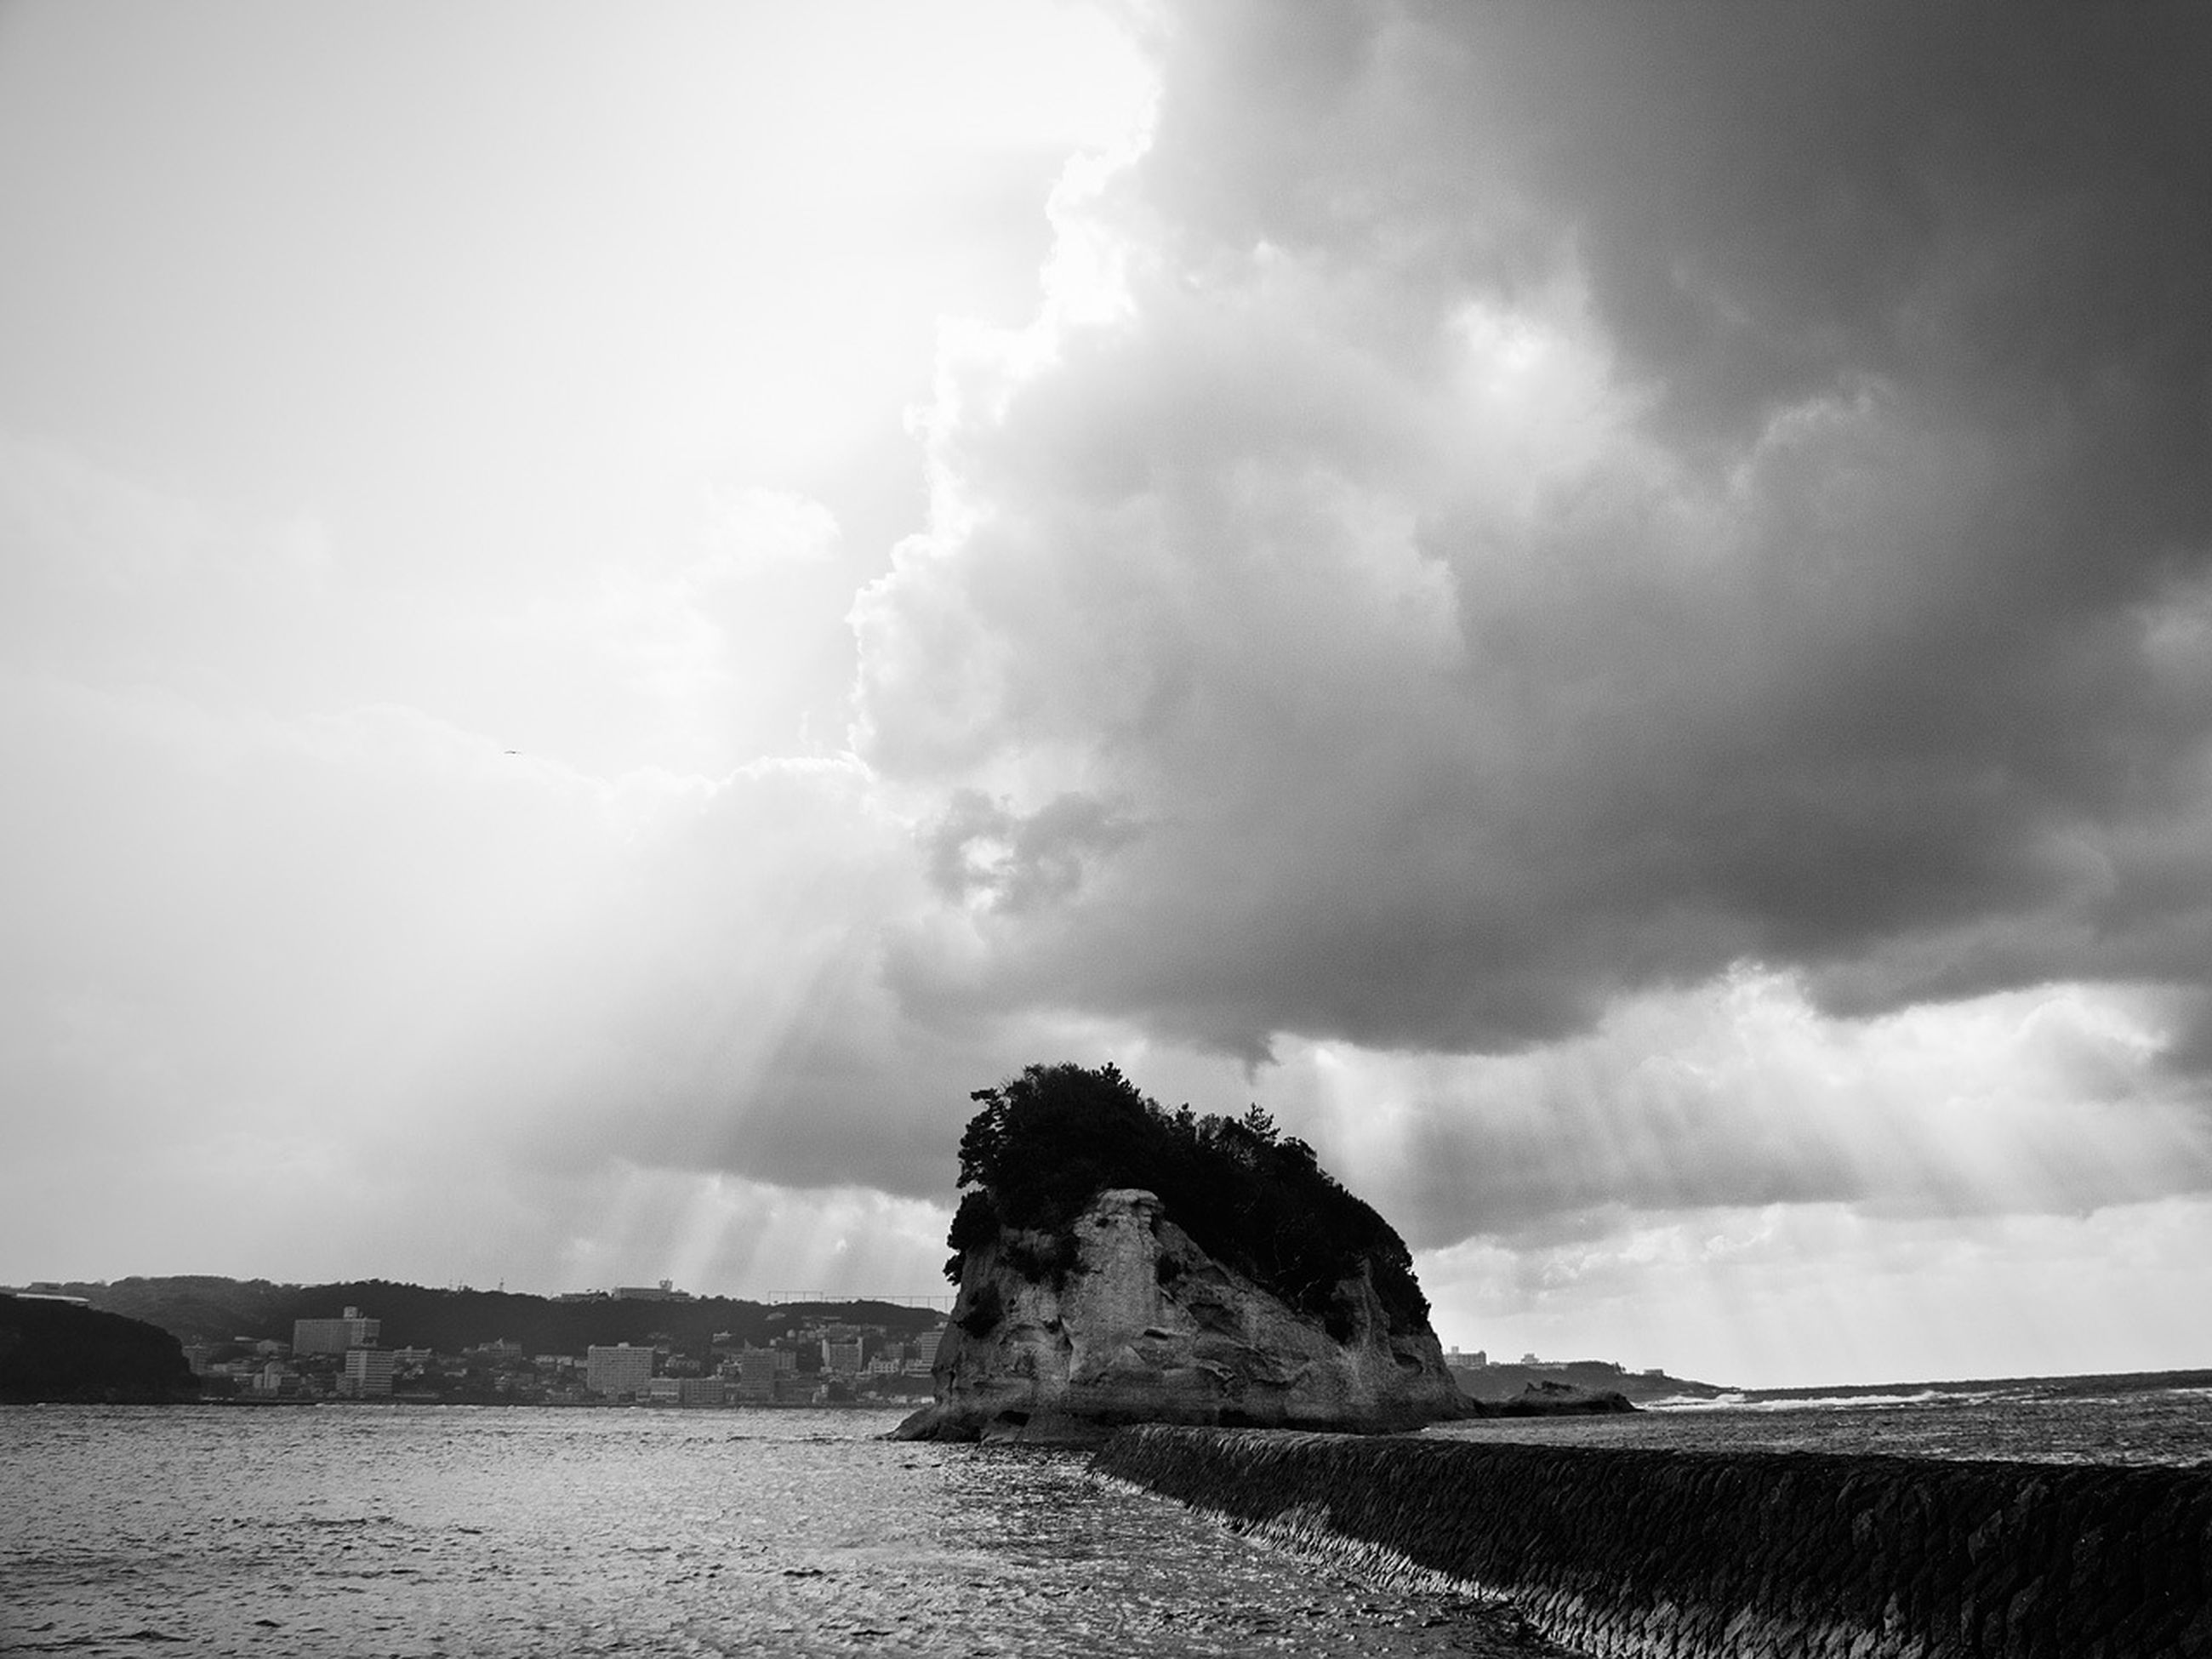 sky, water, cloud - sky, sea, cloudy, scenics, beauty in nature, tranquil scene, tranquility, nature, rock - object, waterfront, overcast, cloud, weather, power in nature, rock formation, beach, horizon over water, day